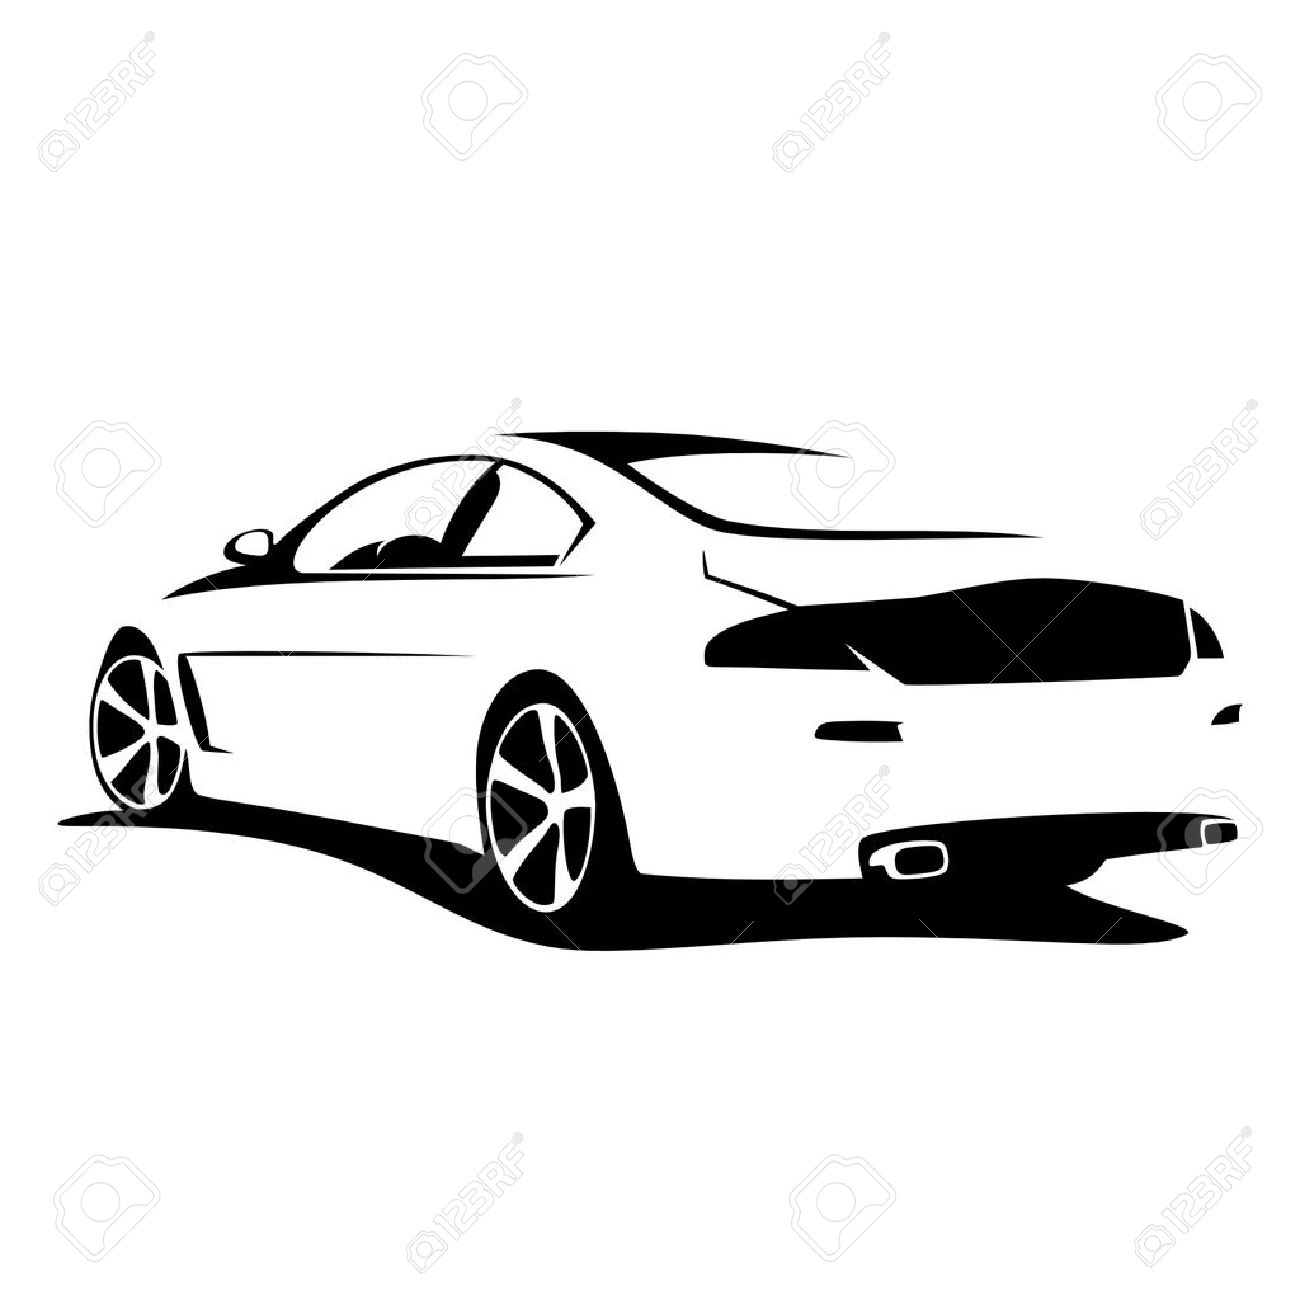 tuning car silhouette Stock Vector - 20227405